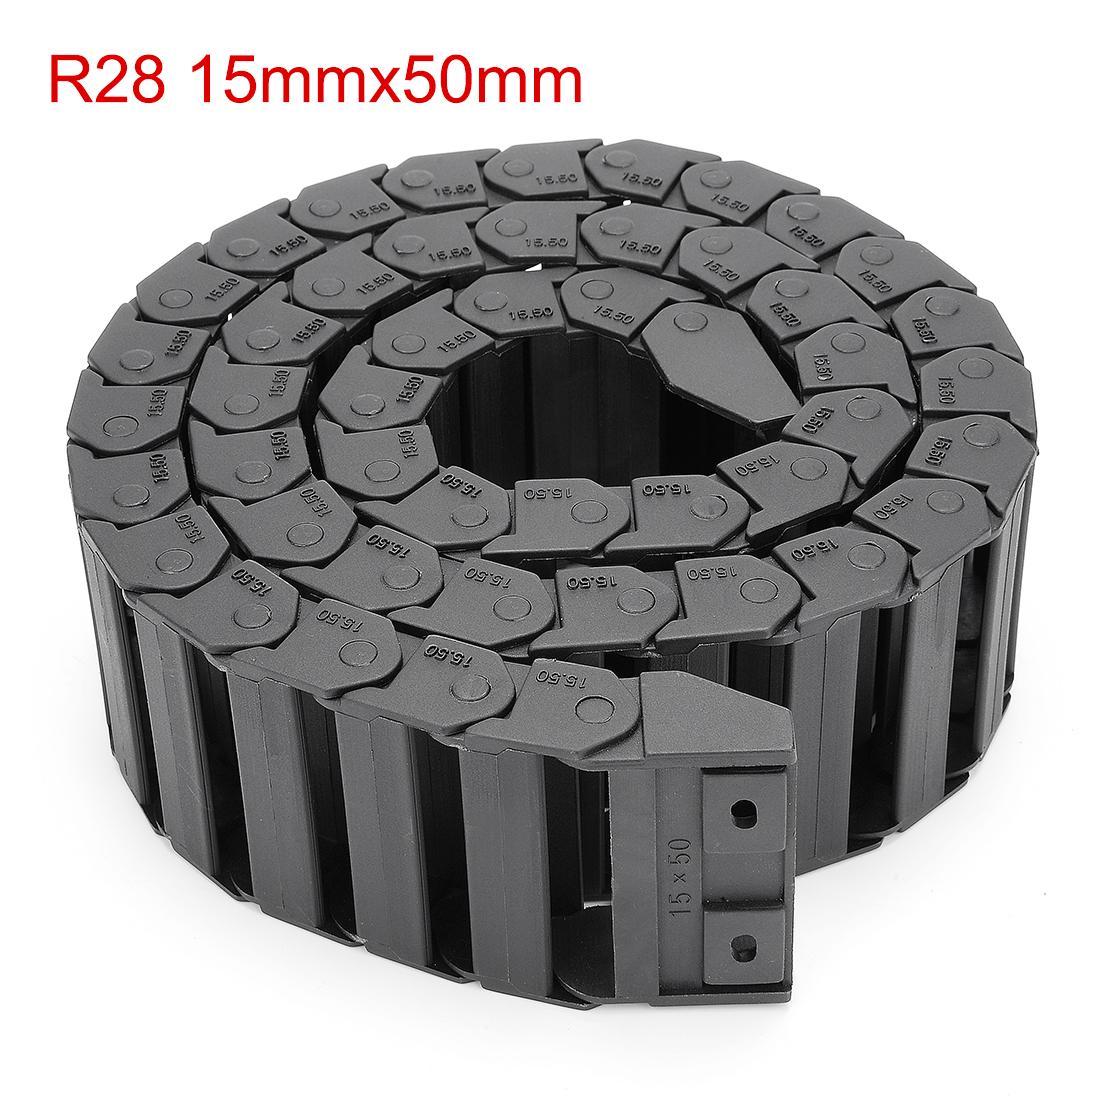 UXCELL R28 15x50mm Black Plastic Cable Drag Chain Wire Carrier 1M Length for CNC high quality bare lamp poa lmp47 for sanyo plc xp41 plc xp41l plc xp46 plc xp46l with japan phoenix original lamp burner